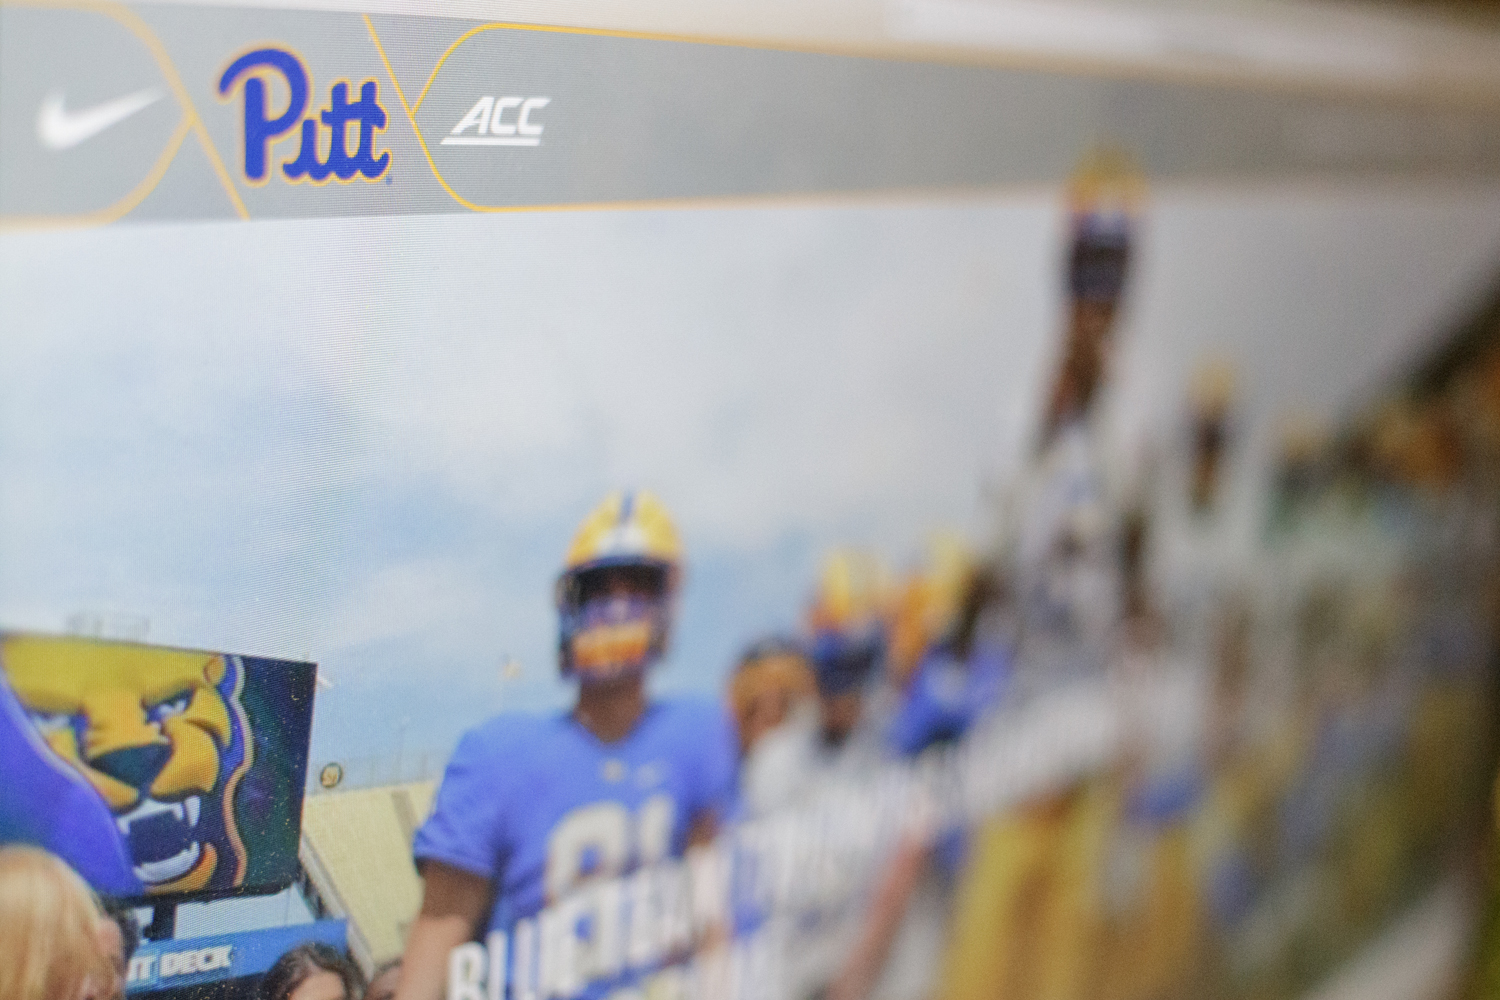 Pitt Athletic's current website.